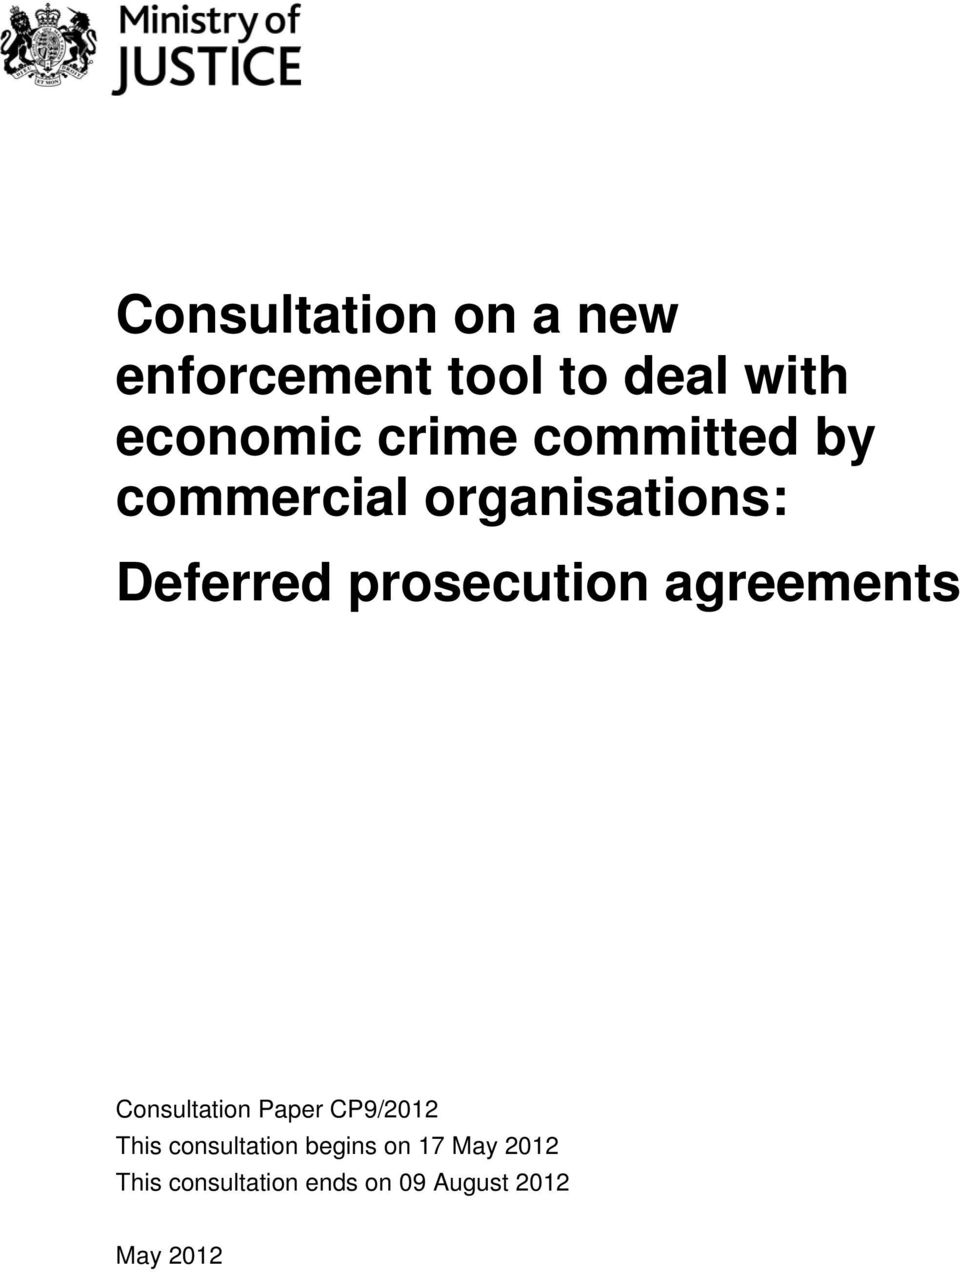 Consultation On A New Enforcement Tool To Deal With Economic Crime